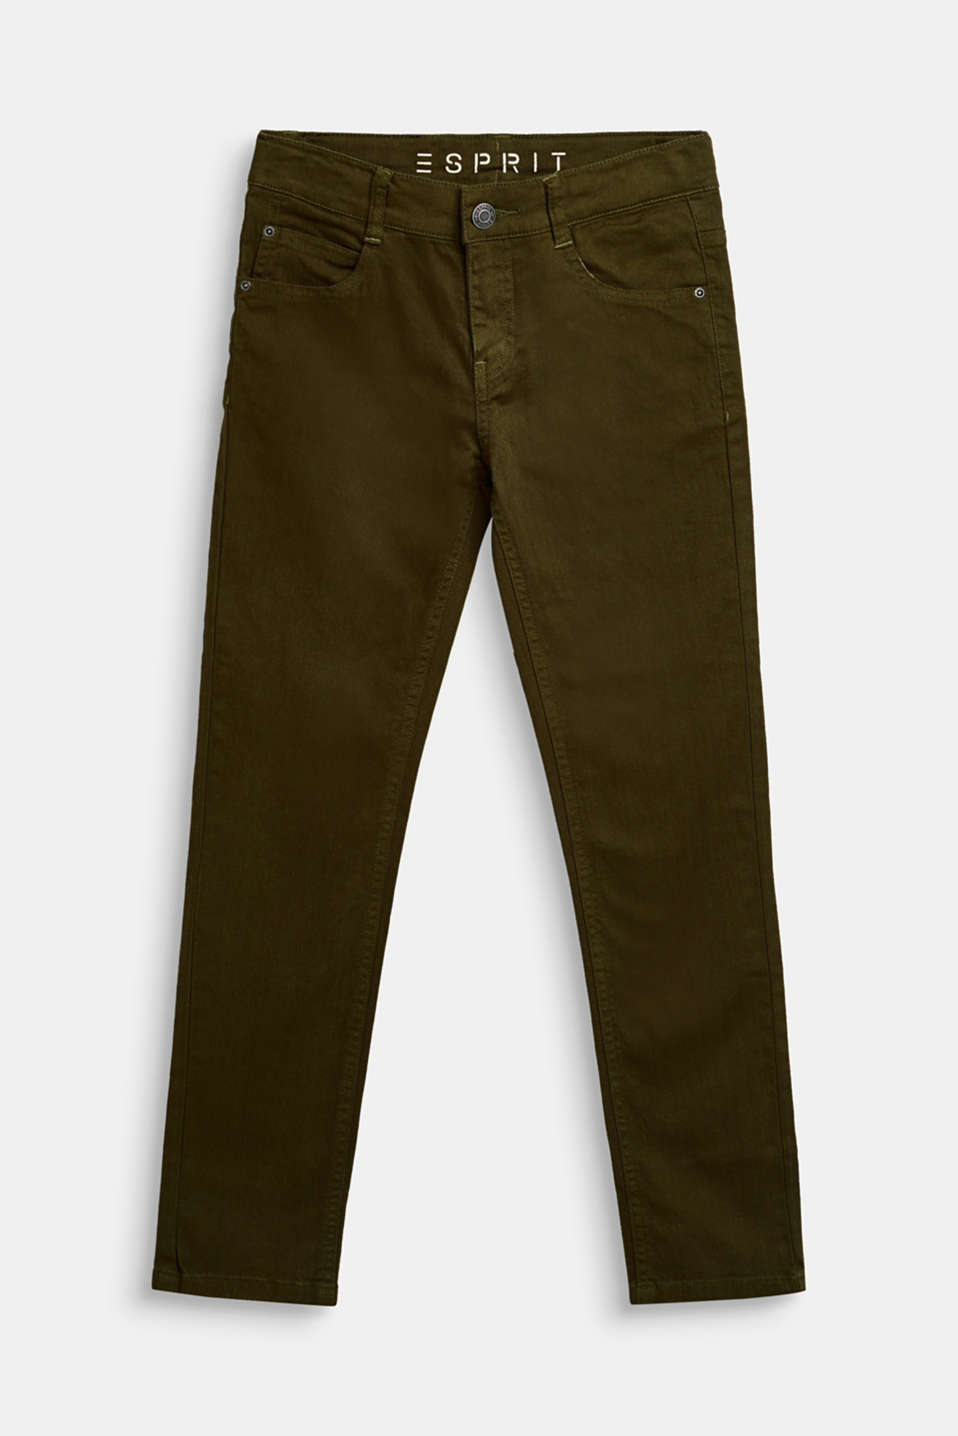 Esprit - Coloured stretch jeans, adjustable waistband